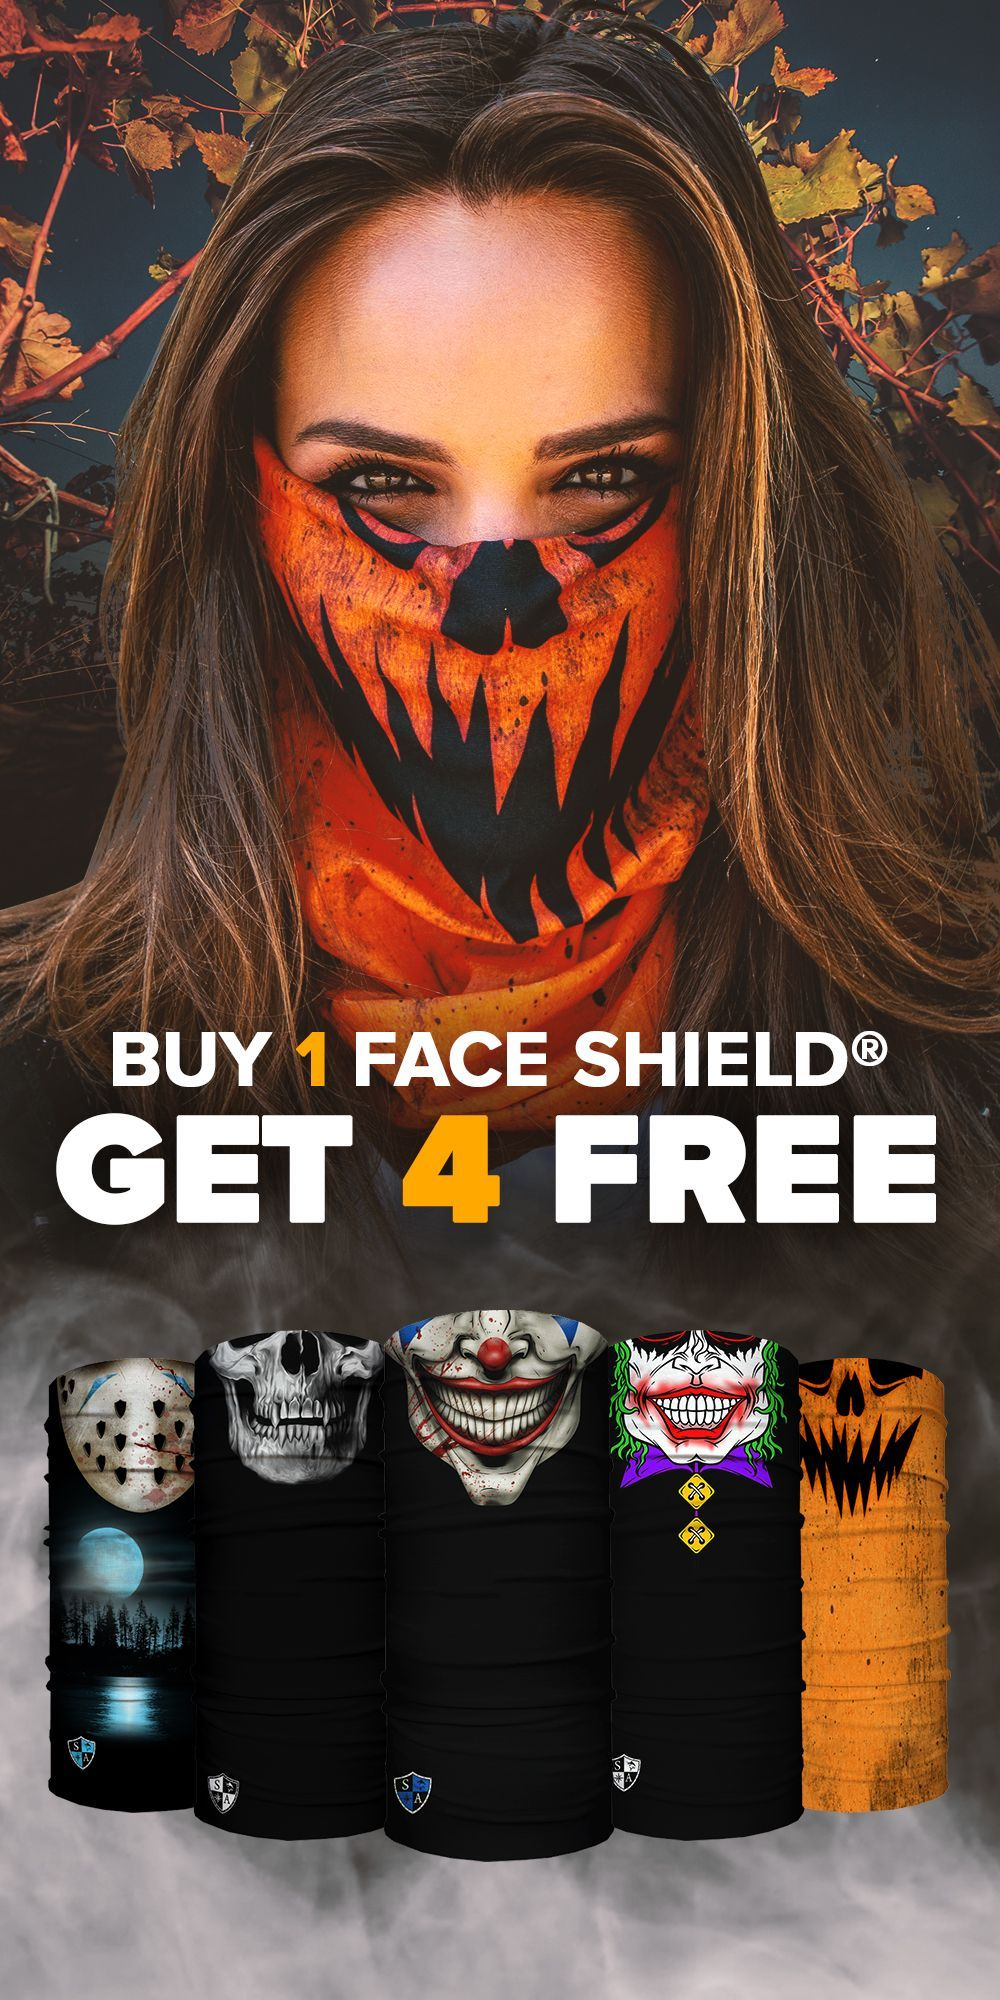 Buy 1, Get 4 Free Pick Your Pack in 2020 Halloween